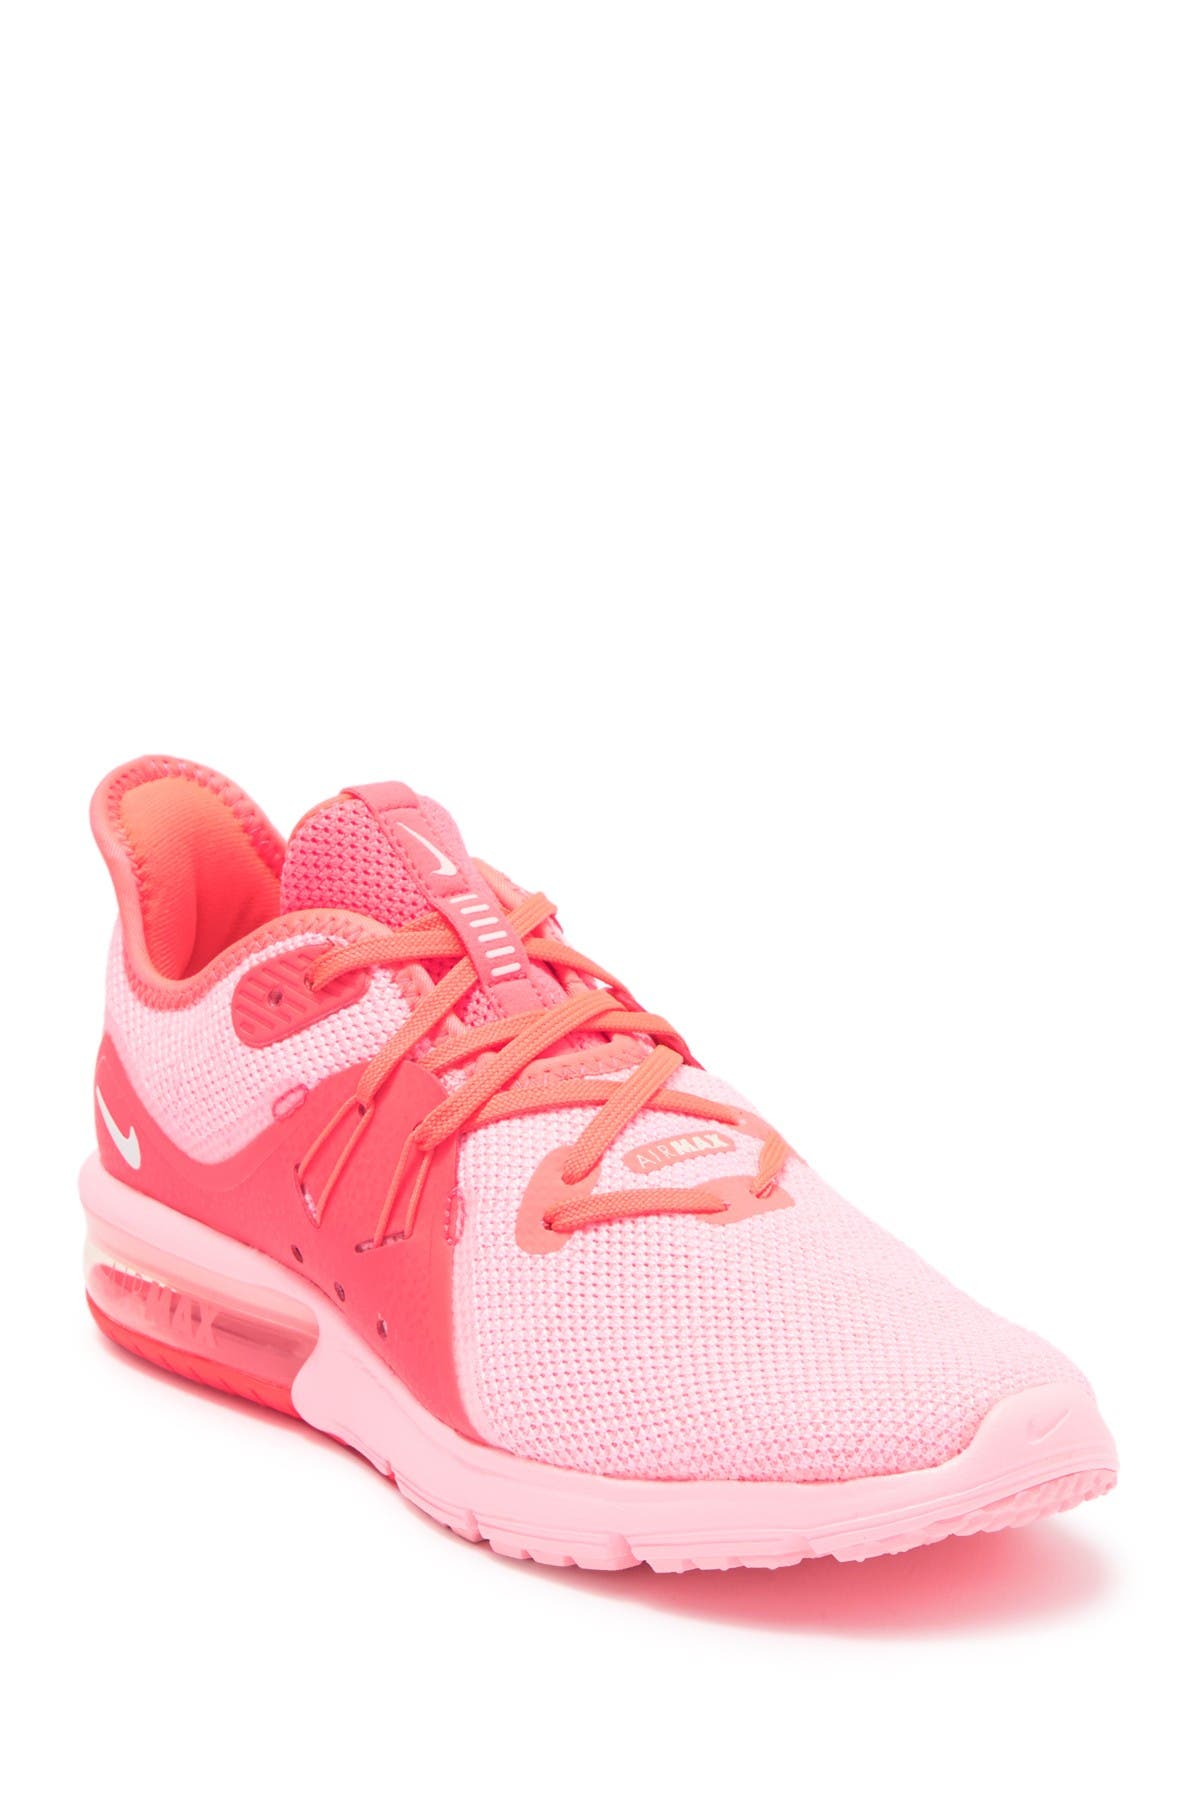 Nike   Air Max Sequent Sneaker